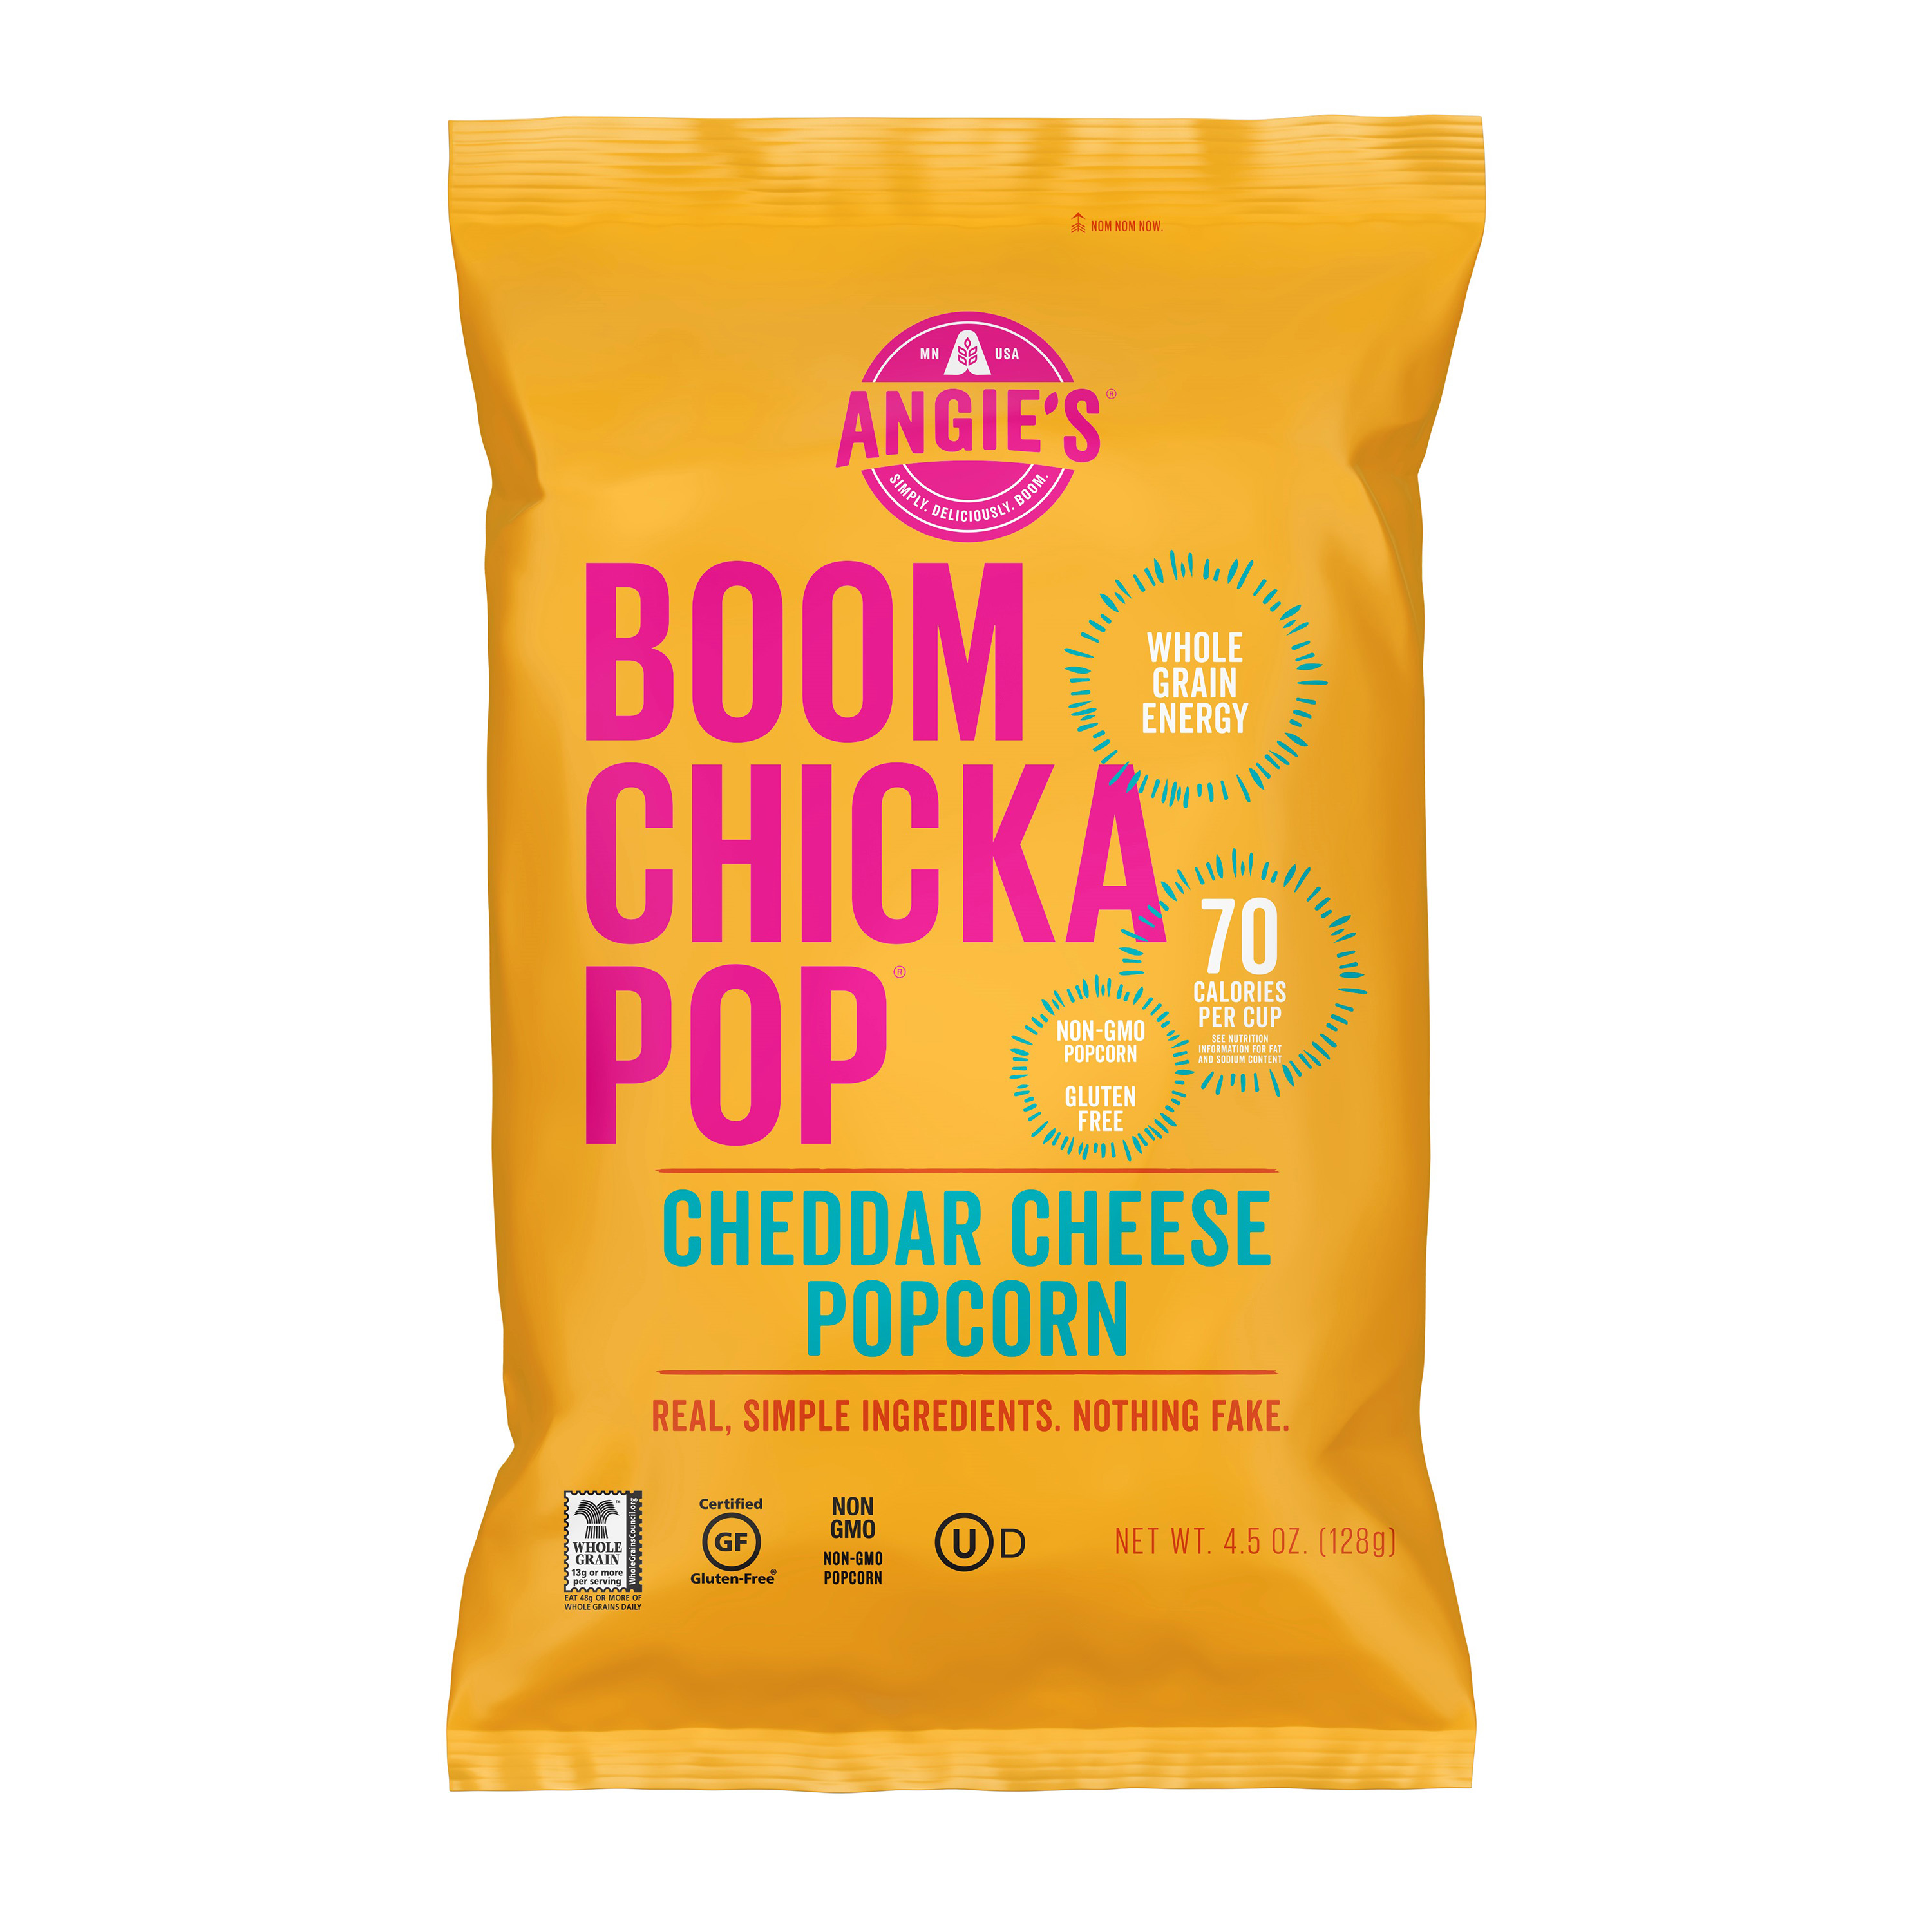 Angie�s BOOMCHICKAPOP Cheddar Cheese Popcorn, 4.5 Ounce Bag (Pack of 3)